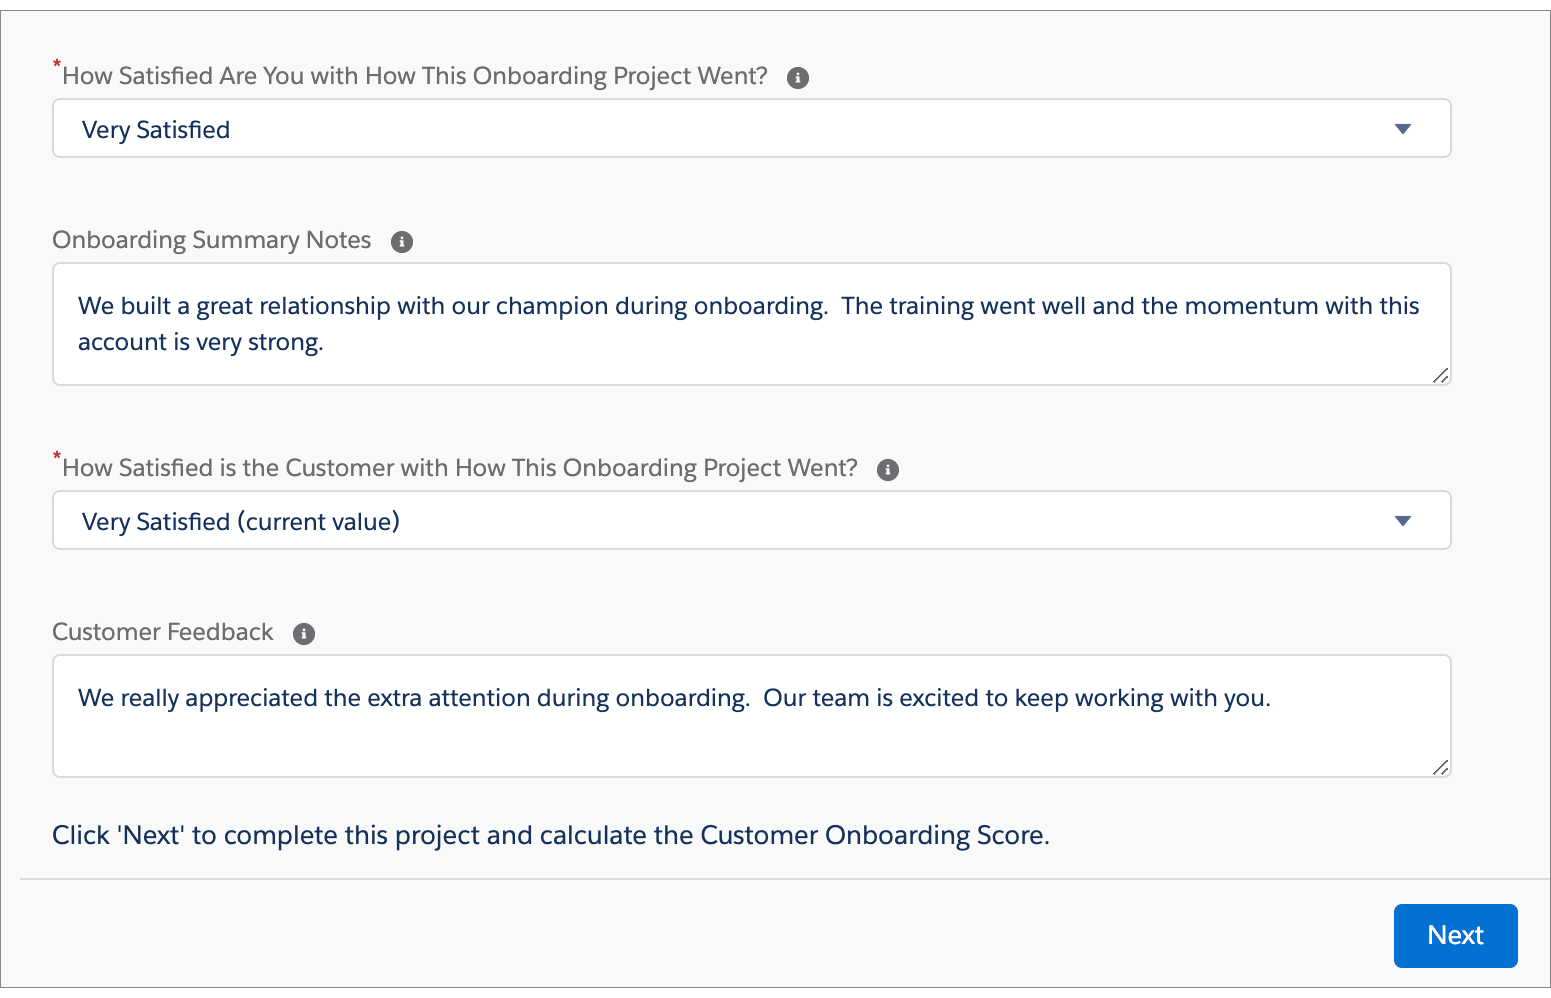 Onboarding_Feedback_and_Sentiment.png